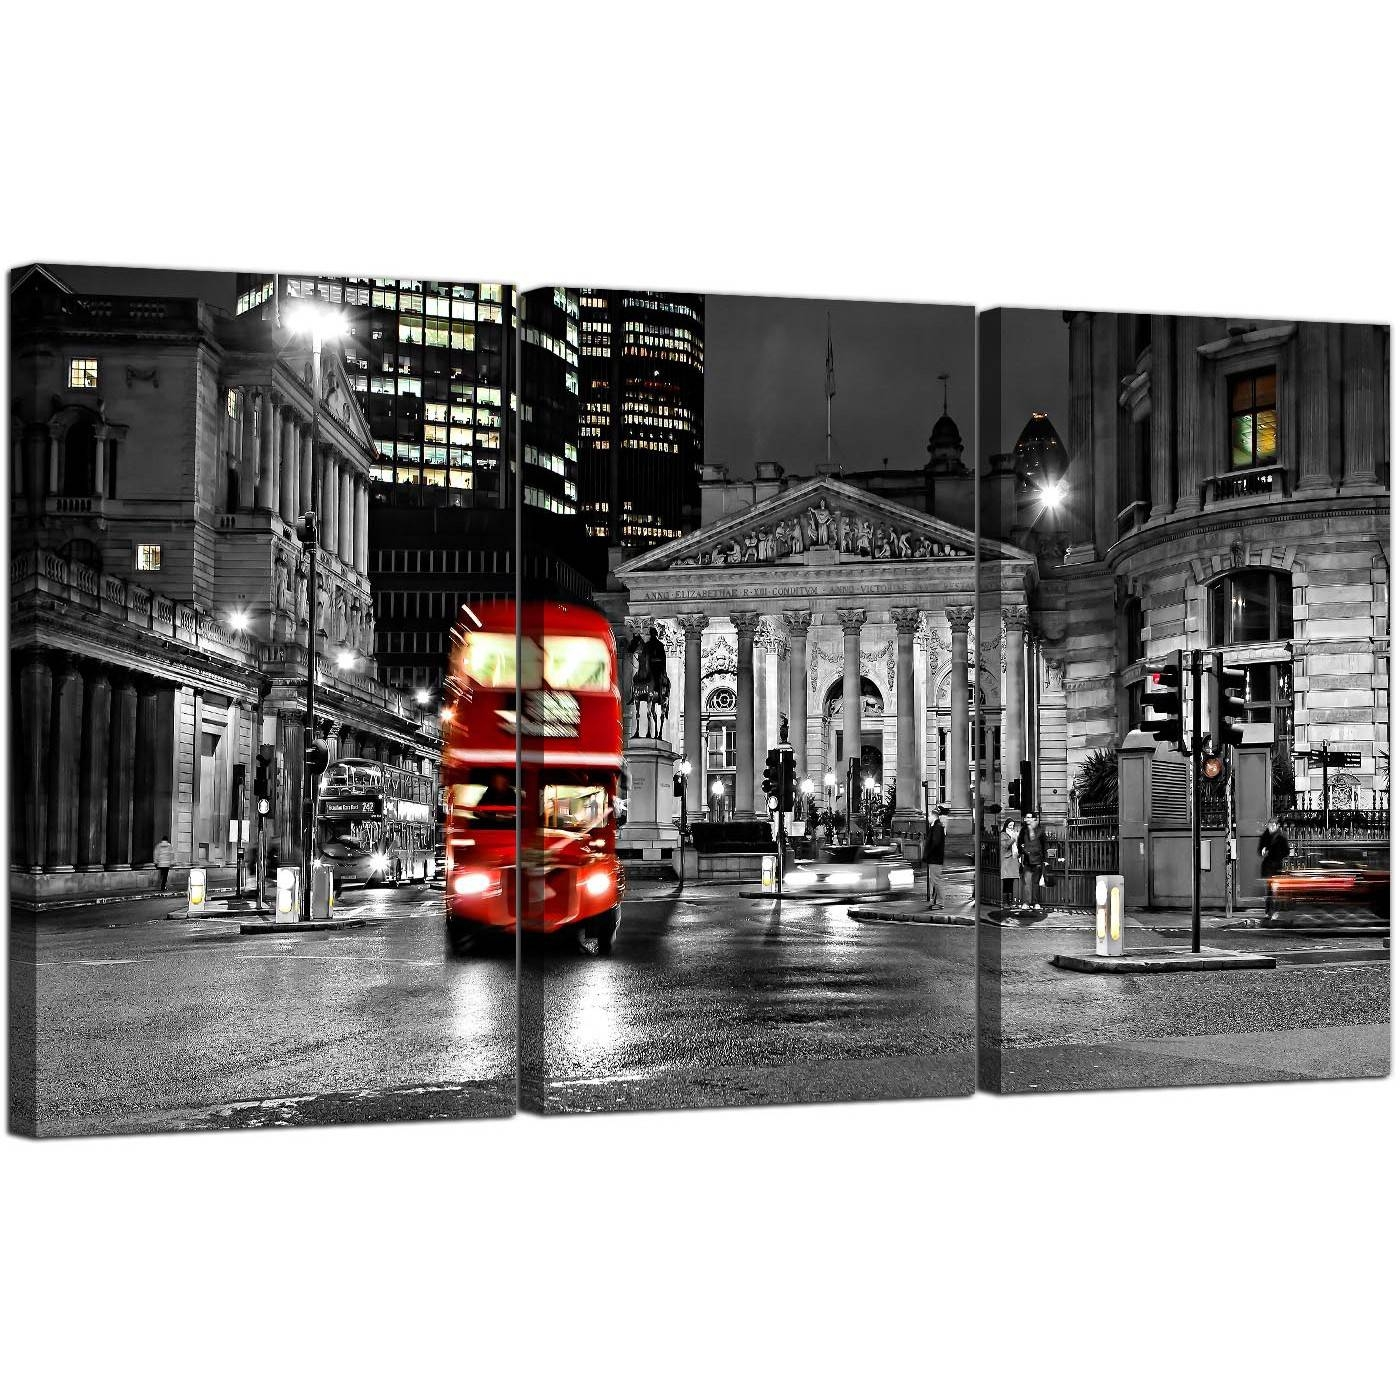 Red London Bus Canvas Wall Art 3 Panel For Your Living Room Intended For Recent Cityscape Canvas Wall Art (View 17 of 20)